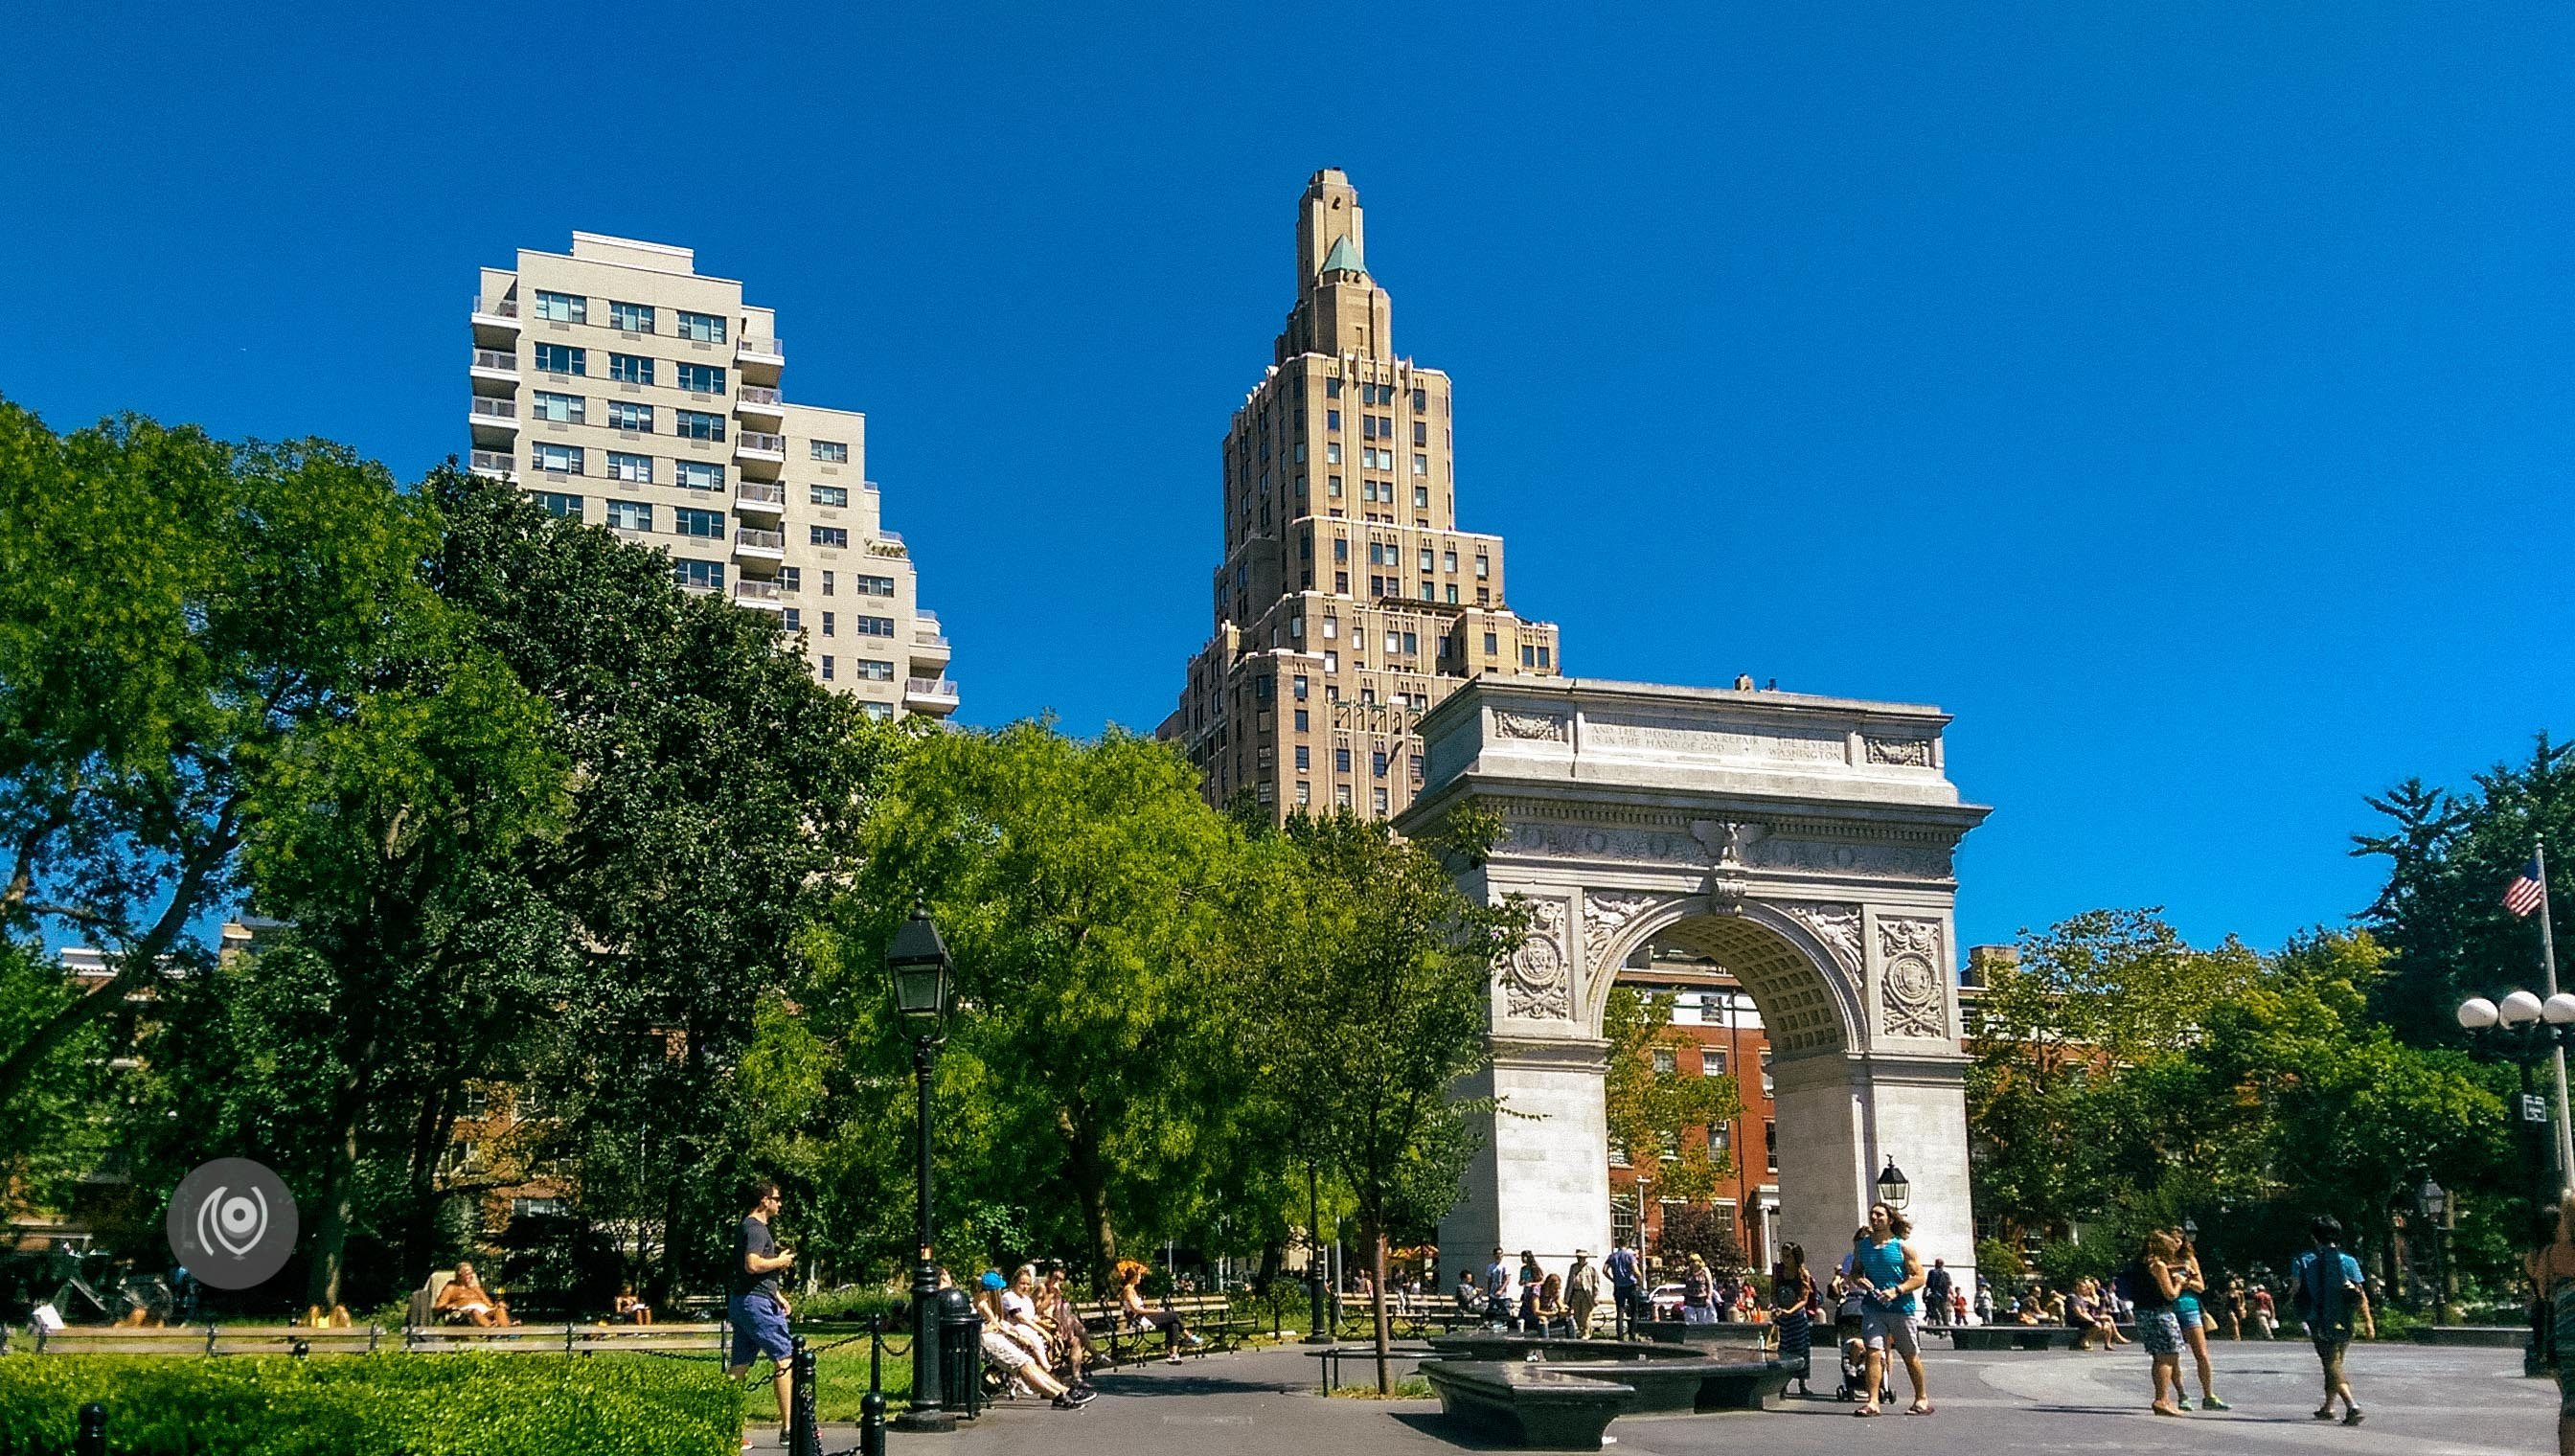 Walk to Washington Square Park #EyesForNewYork #REDHUxNYC Naina.co Luxury & Lifestyle, Photographer Storyteller, Blogger